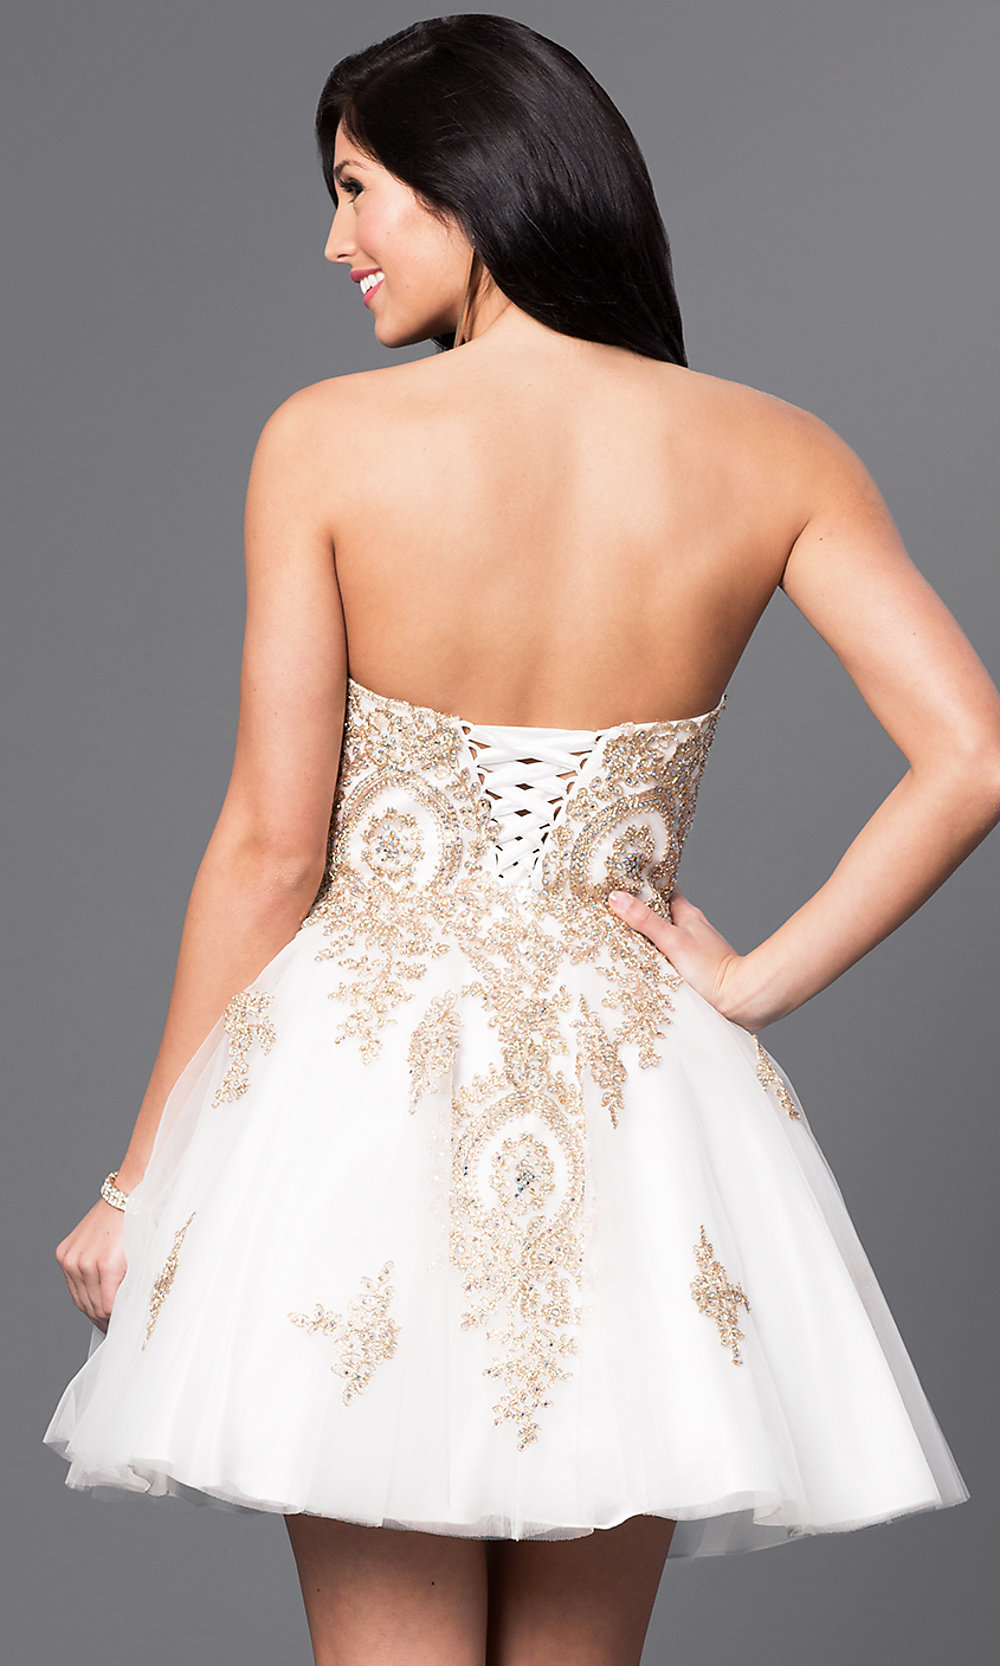 Strapless Babydoll Homecoming Dresses -PromGirl